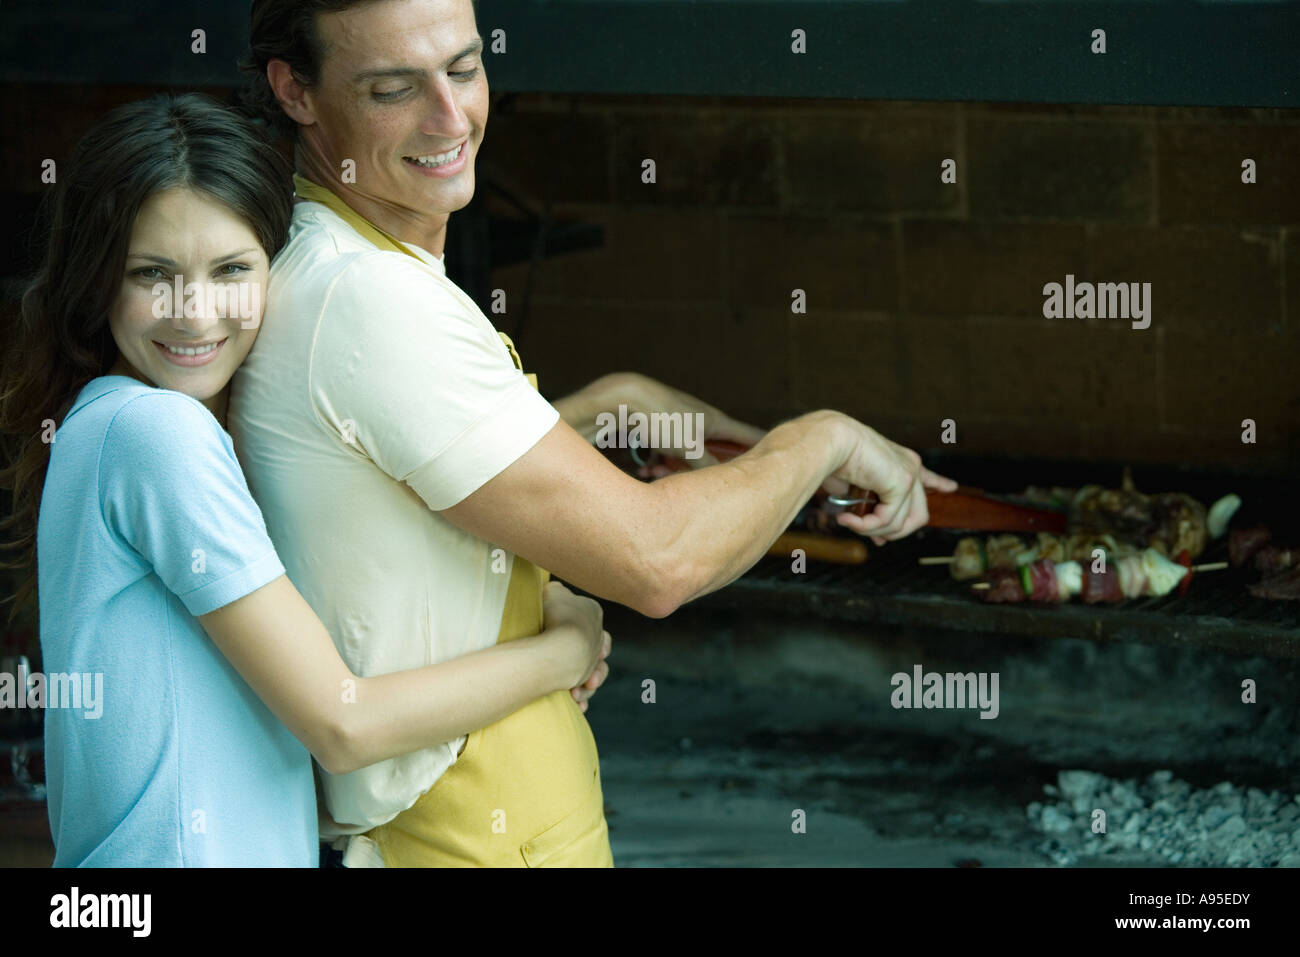 Couple having cookout, woman hugging man from behind - Stock Image